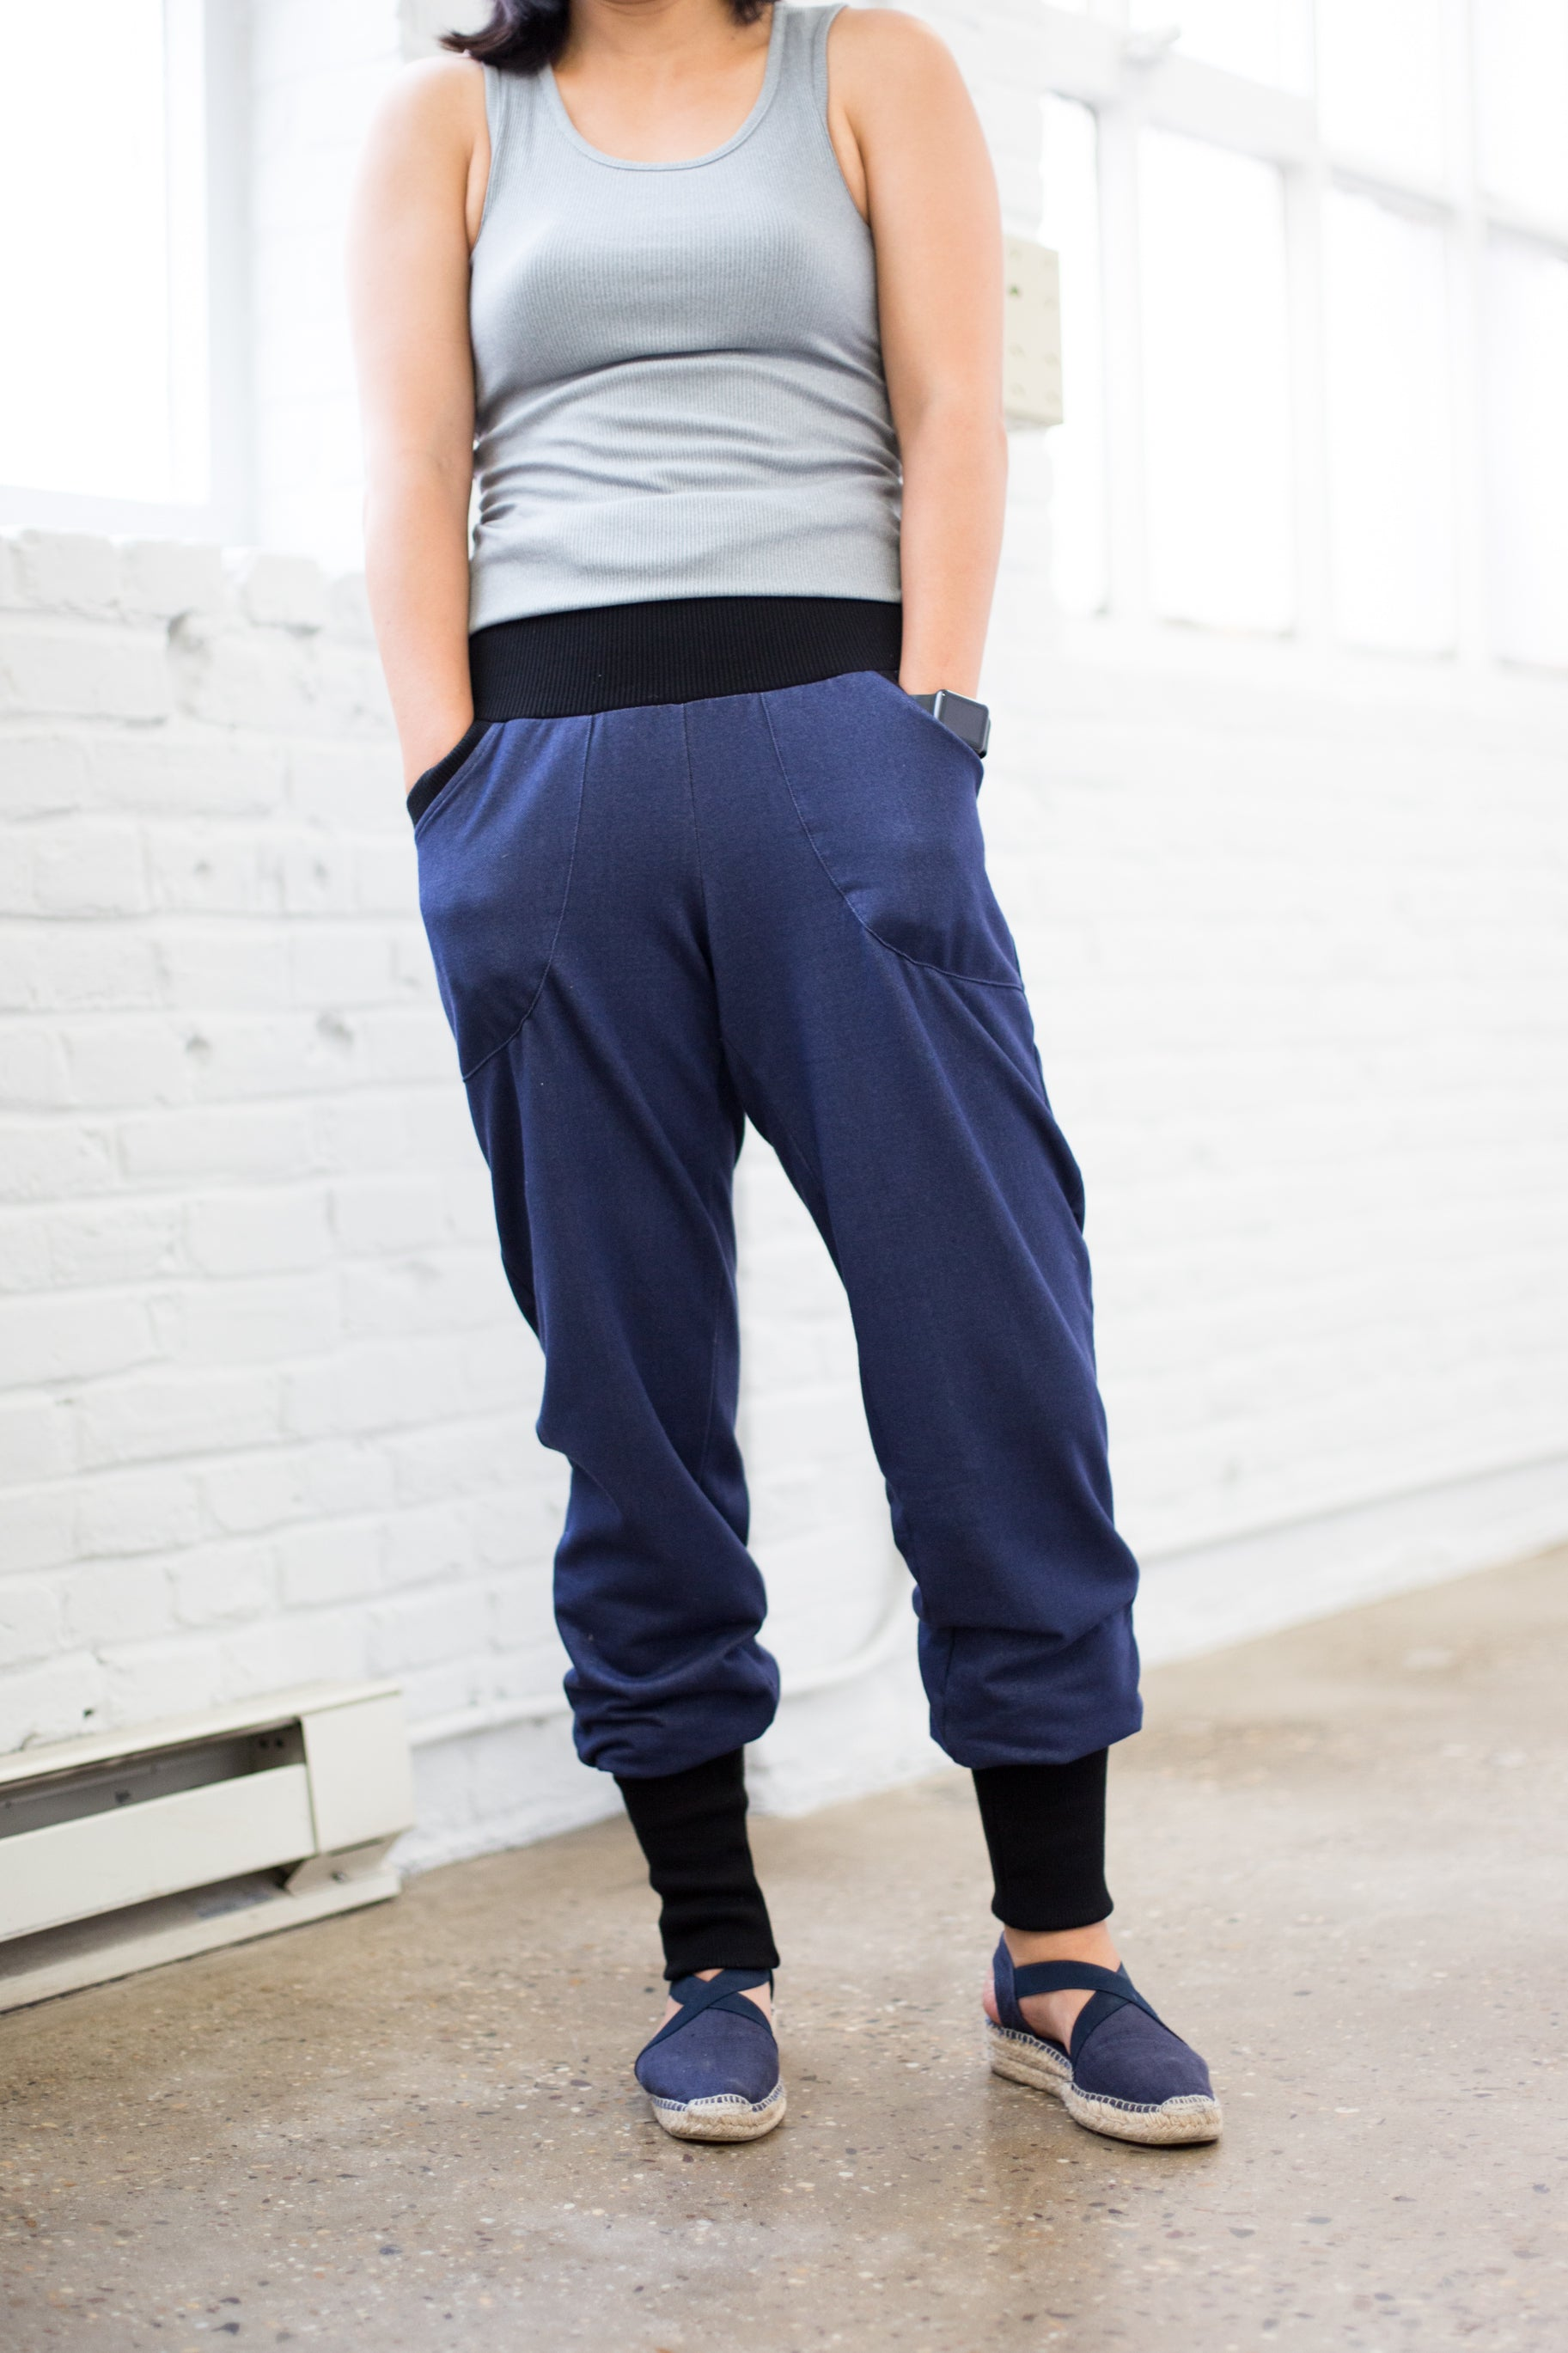 ALVI Maternity Pants